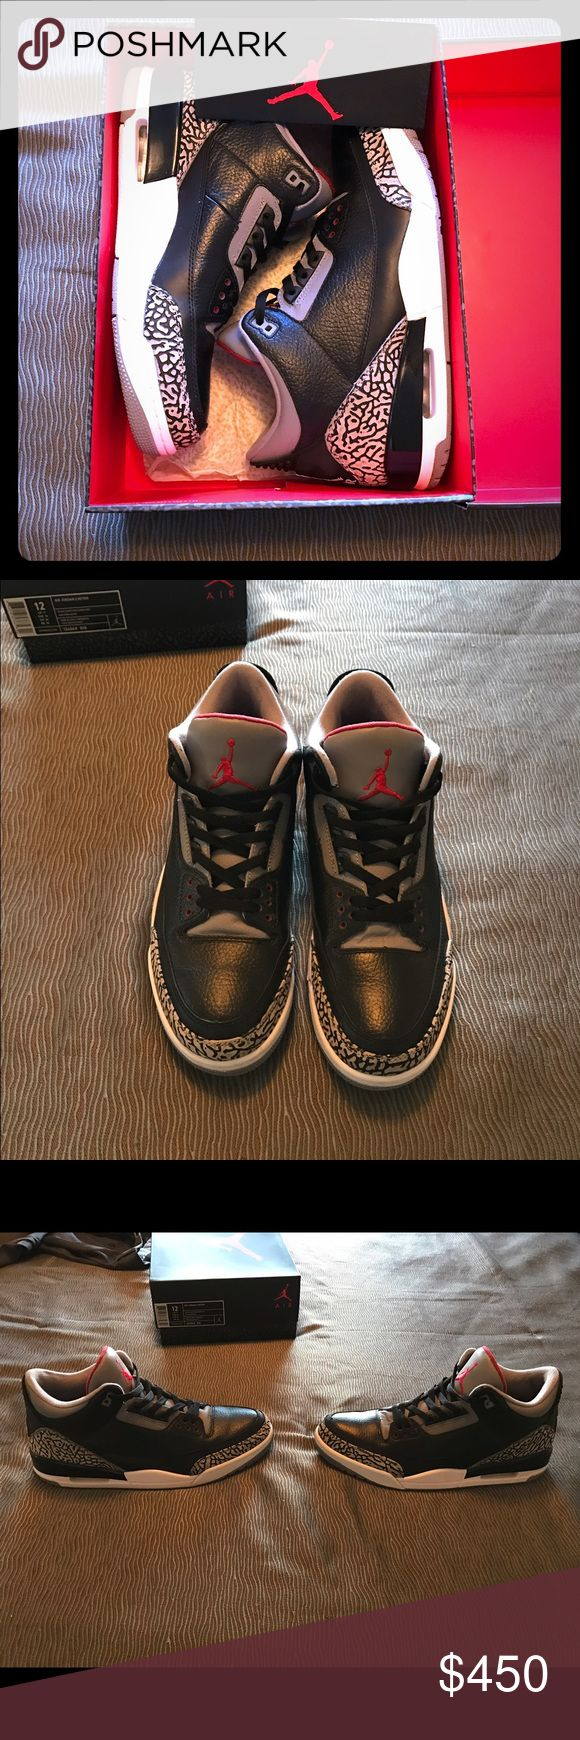 Air Jordan Retro Cement 3's New, barely worn Jordan cement 3's. Still in perfect condition Jordan Shoes Sneakers